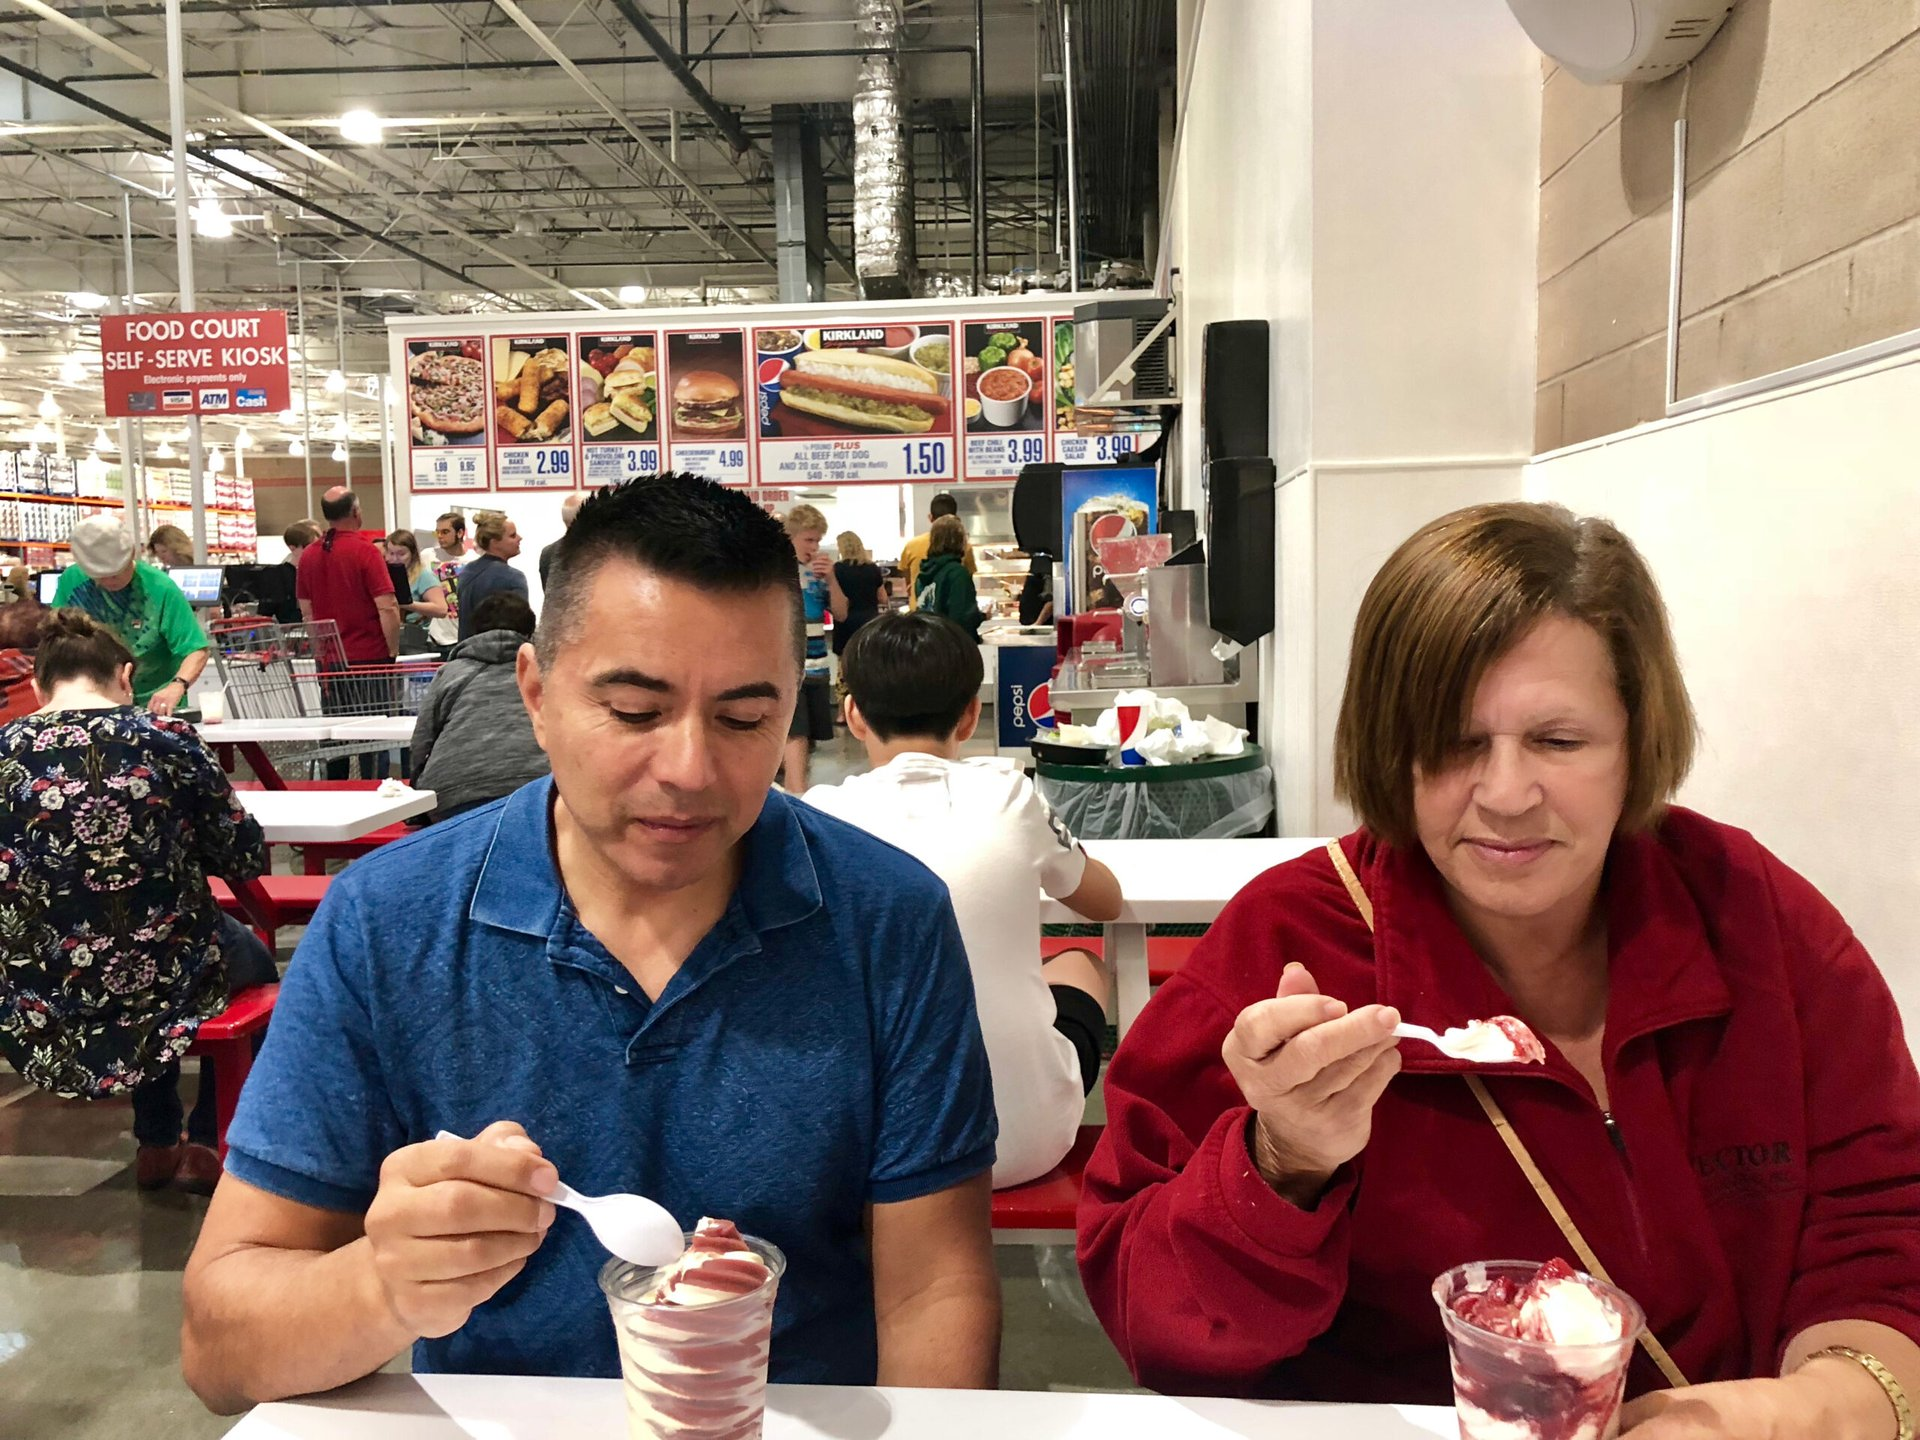 Costco food court customers